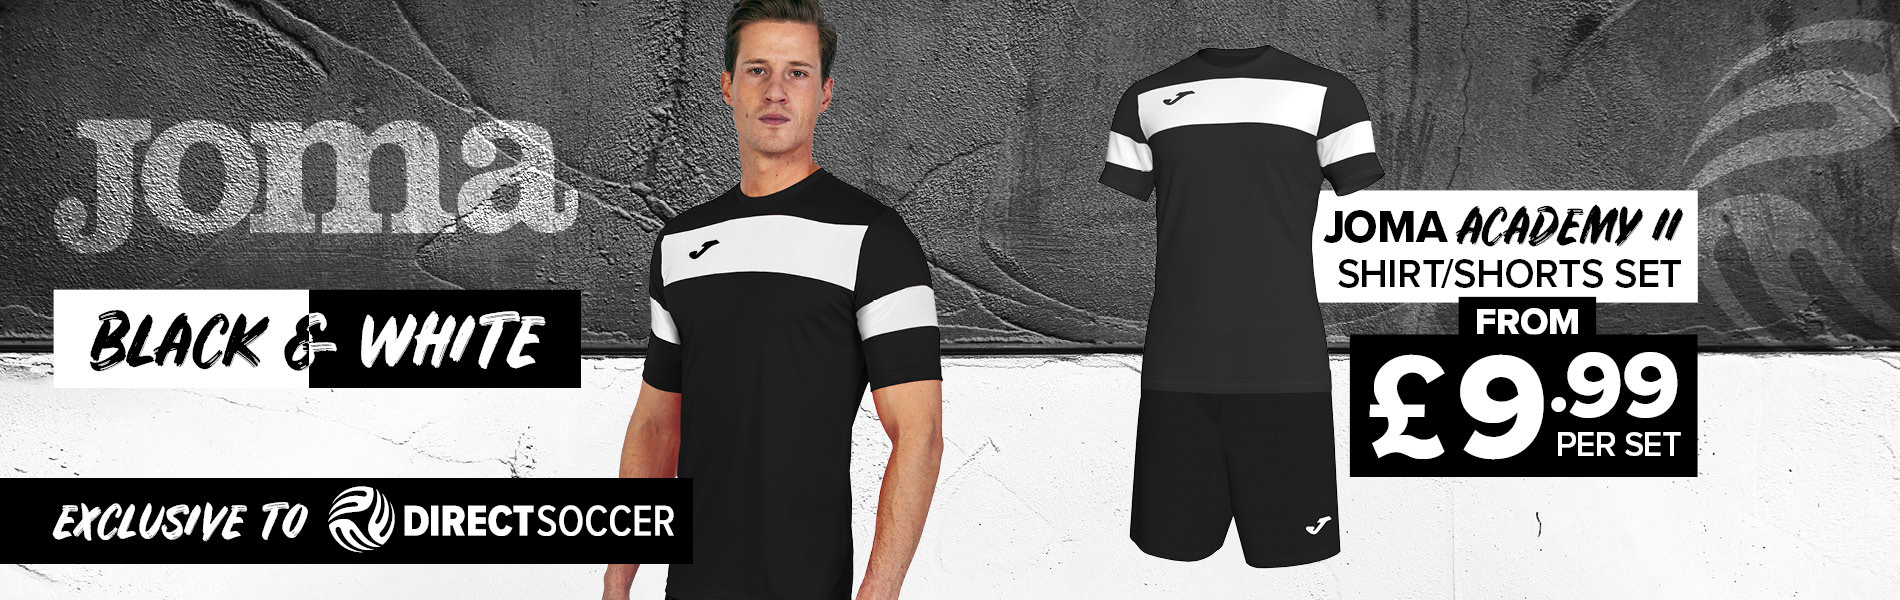 Joma Academy II Black and White set